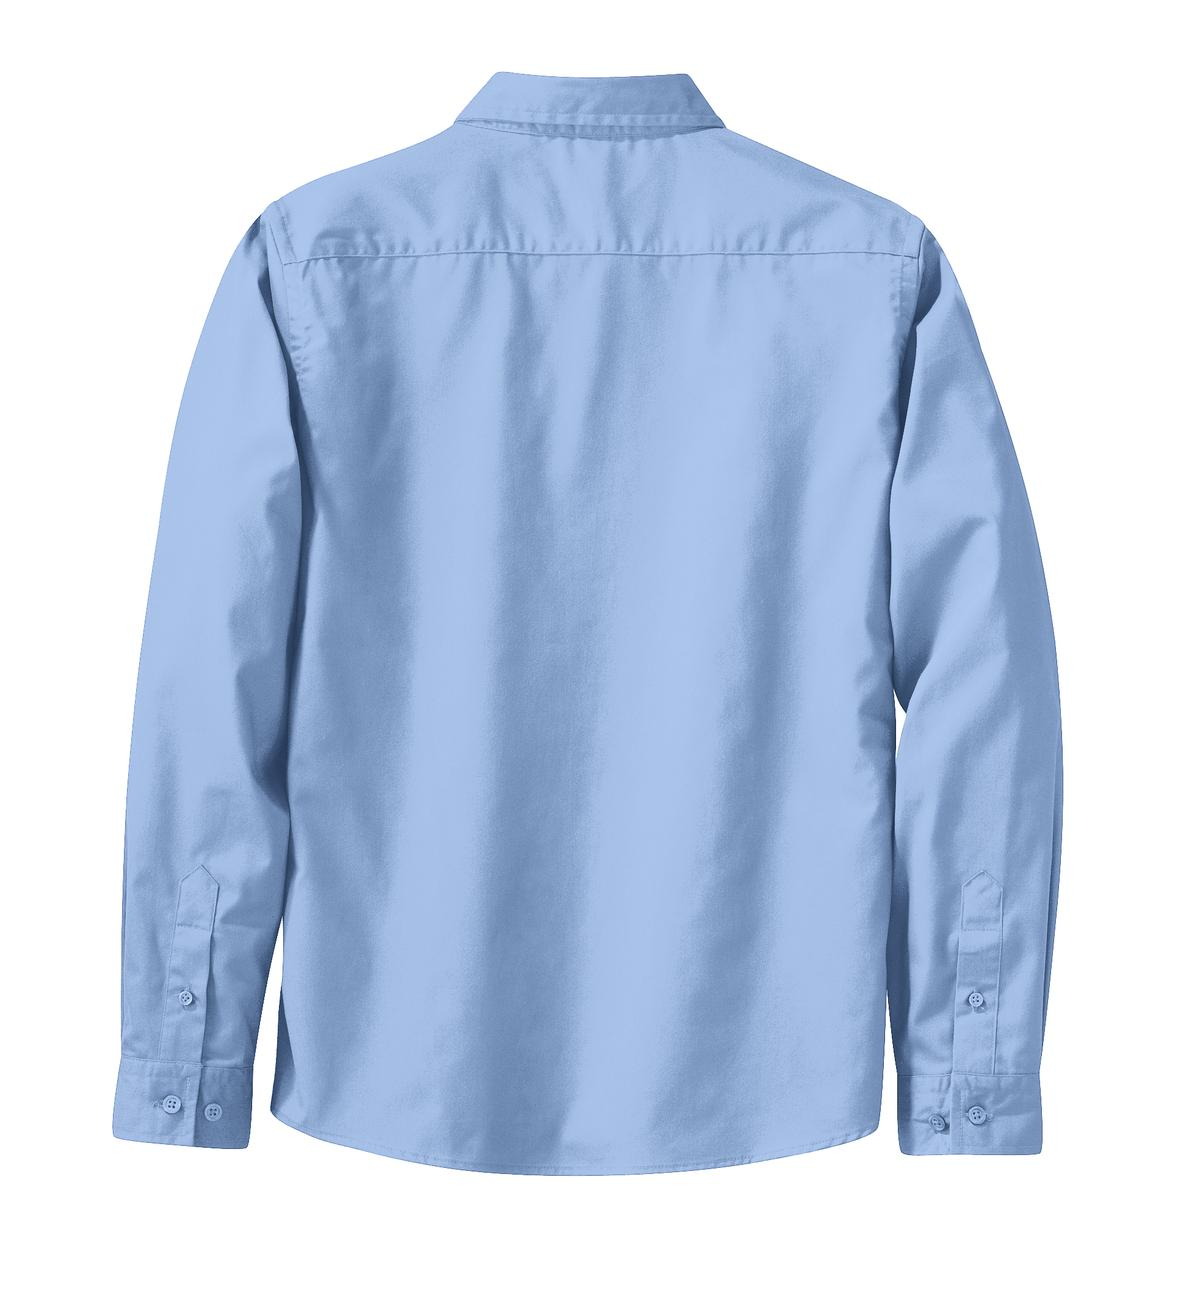 Mafoose Women's Long Sleeve Easy Care Shirt Light Blue/Light Stone-Back